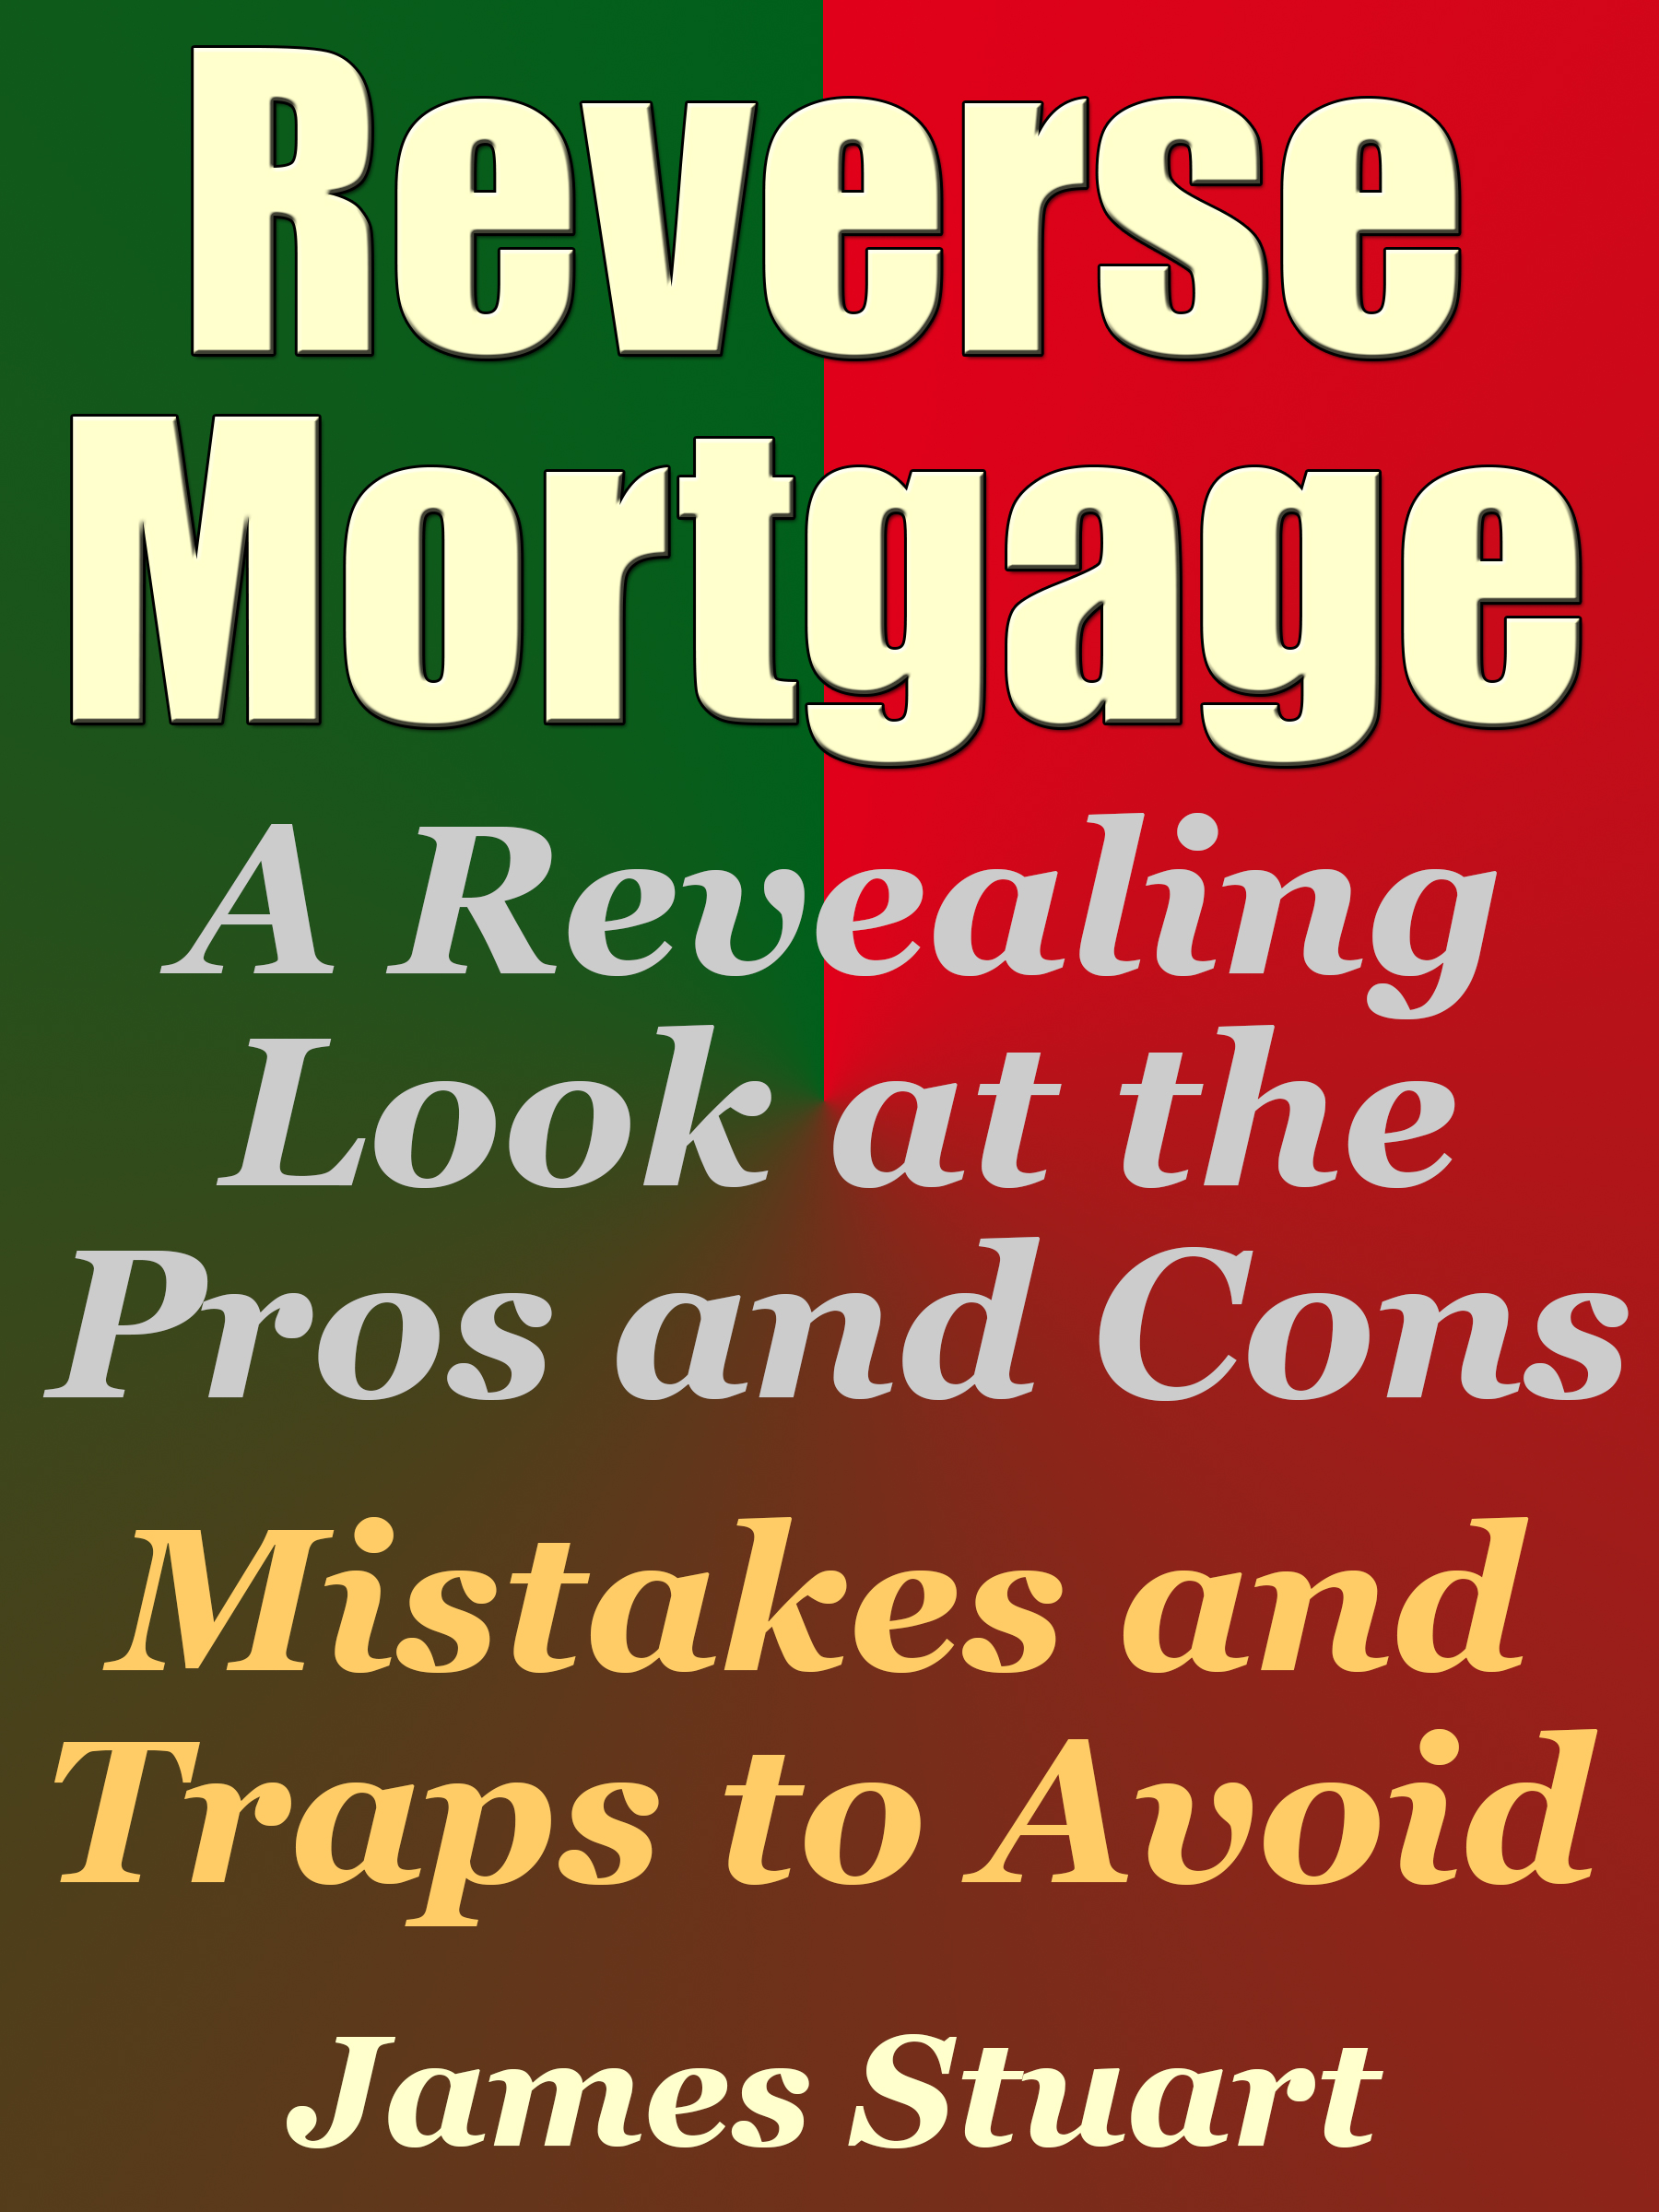 James Stuart - Reverse Mortgage: A Revealing Look at the Pros and Cons - Mistakes and Traps to Avoid